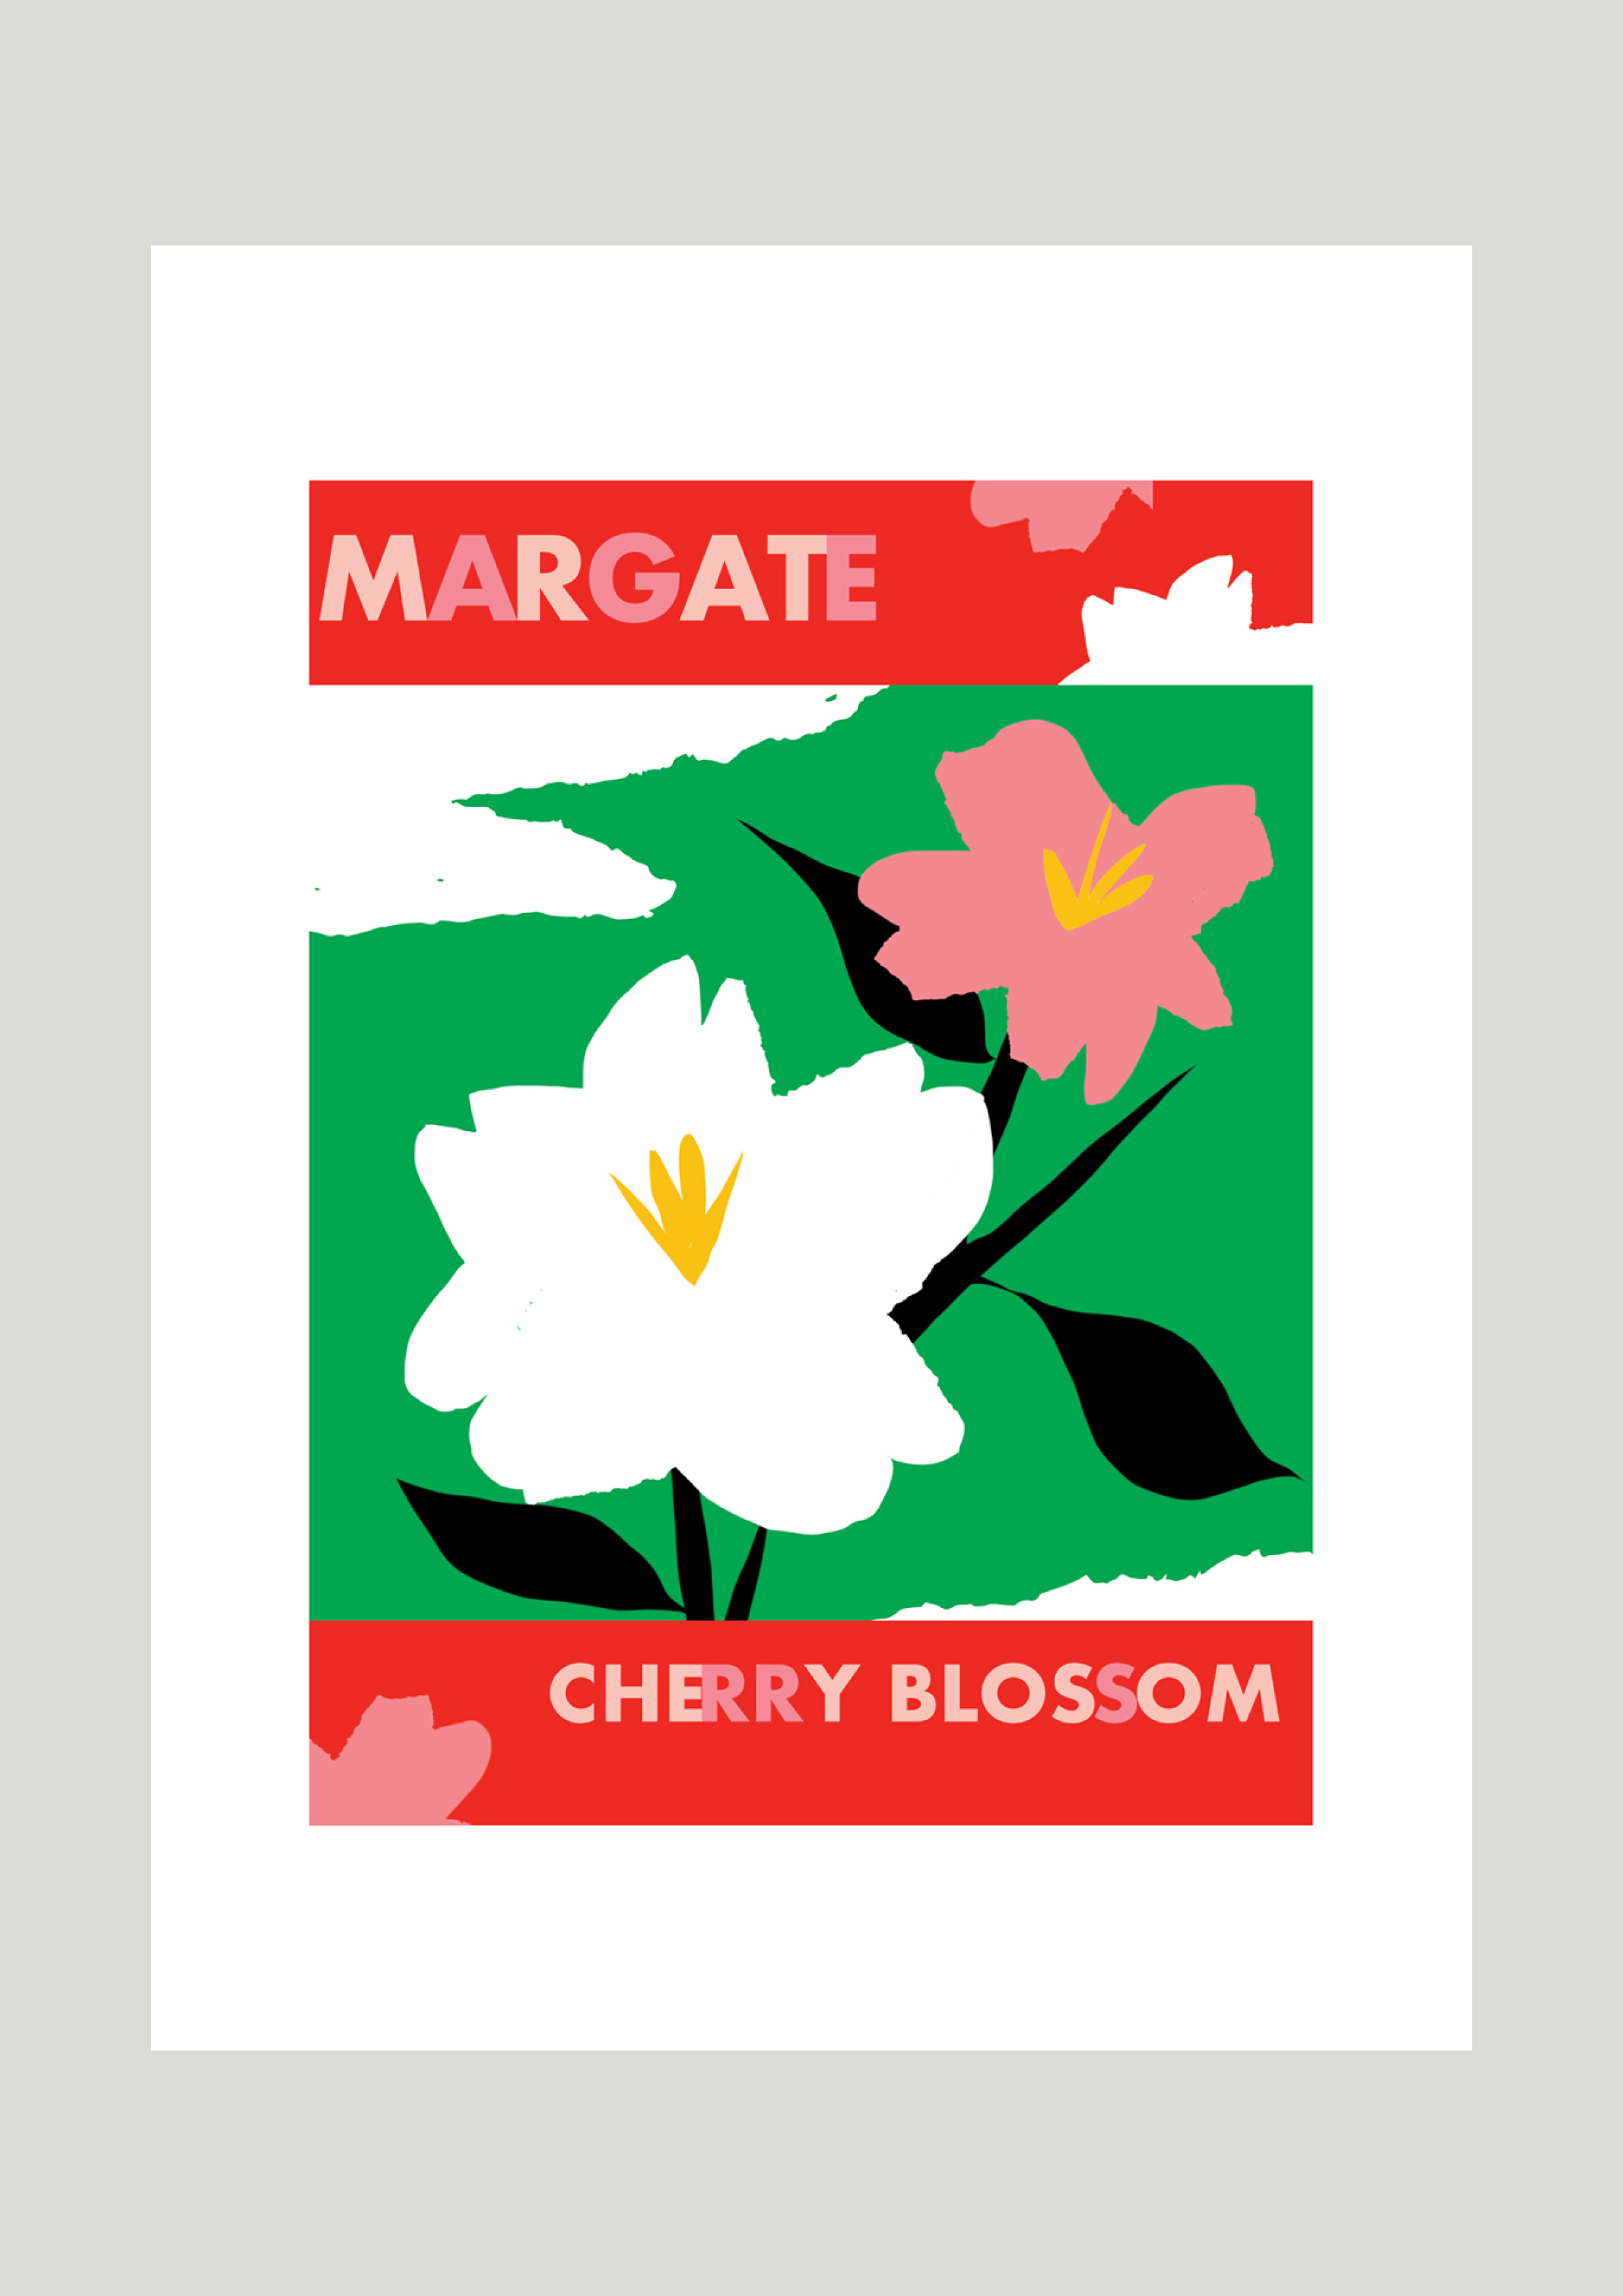 Campaign poster for cherry blossom trees, Margate